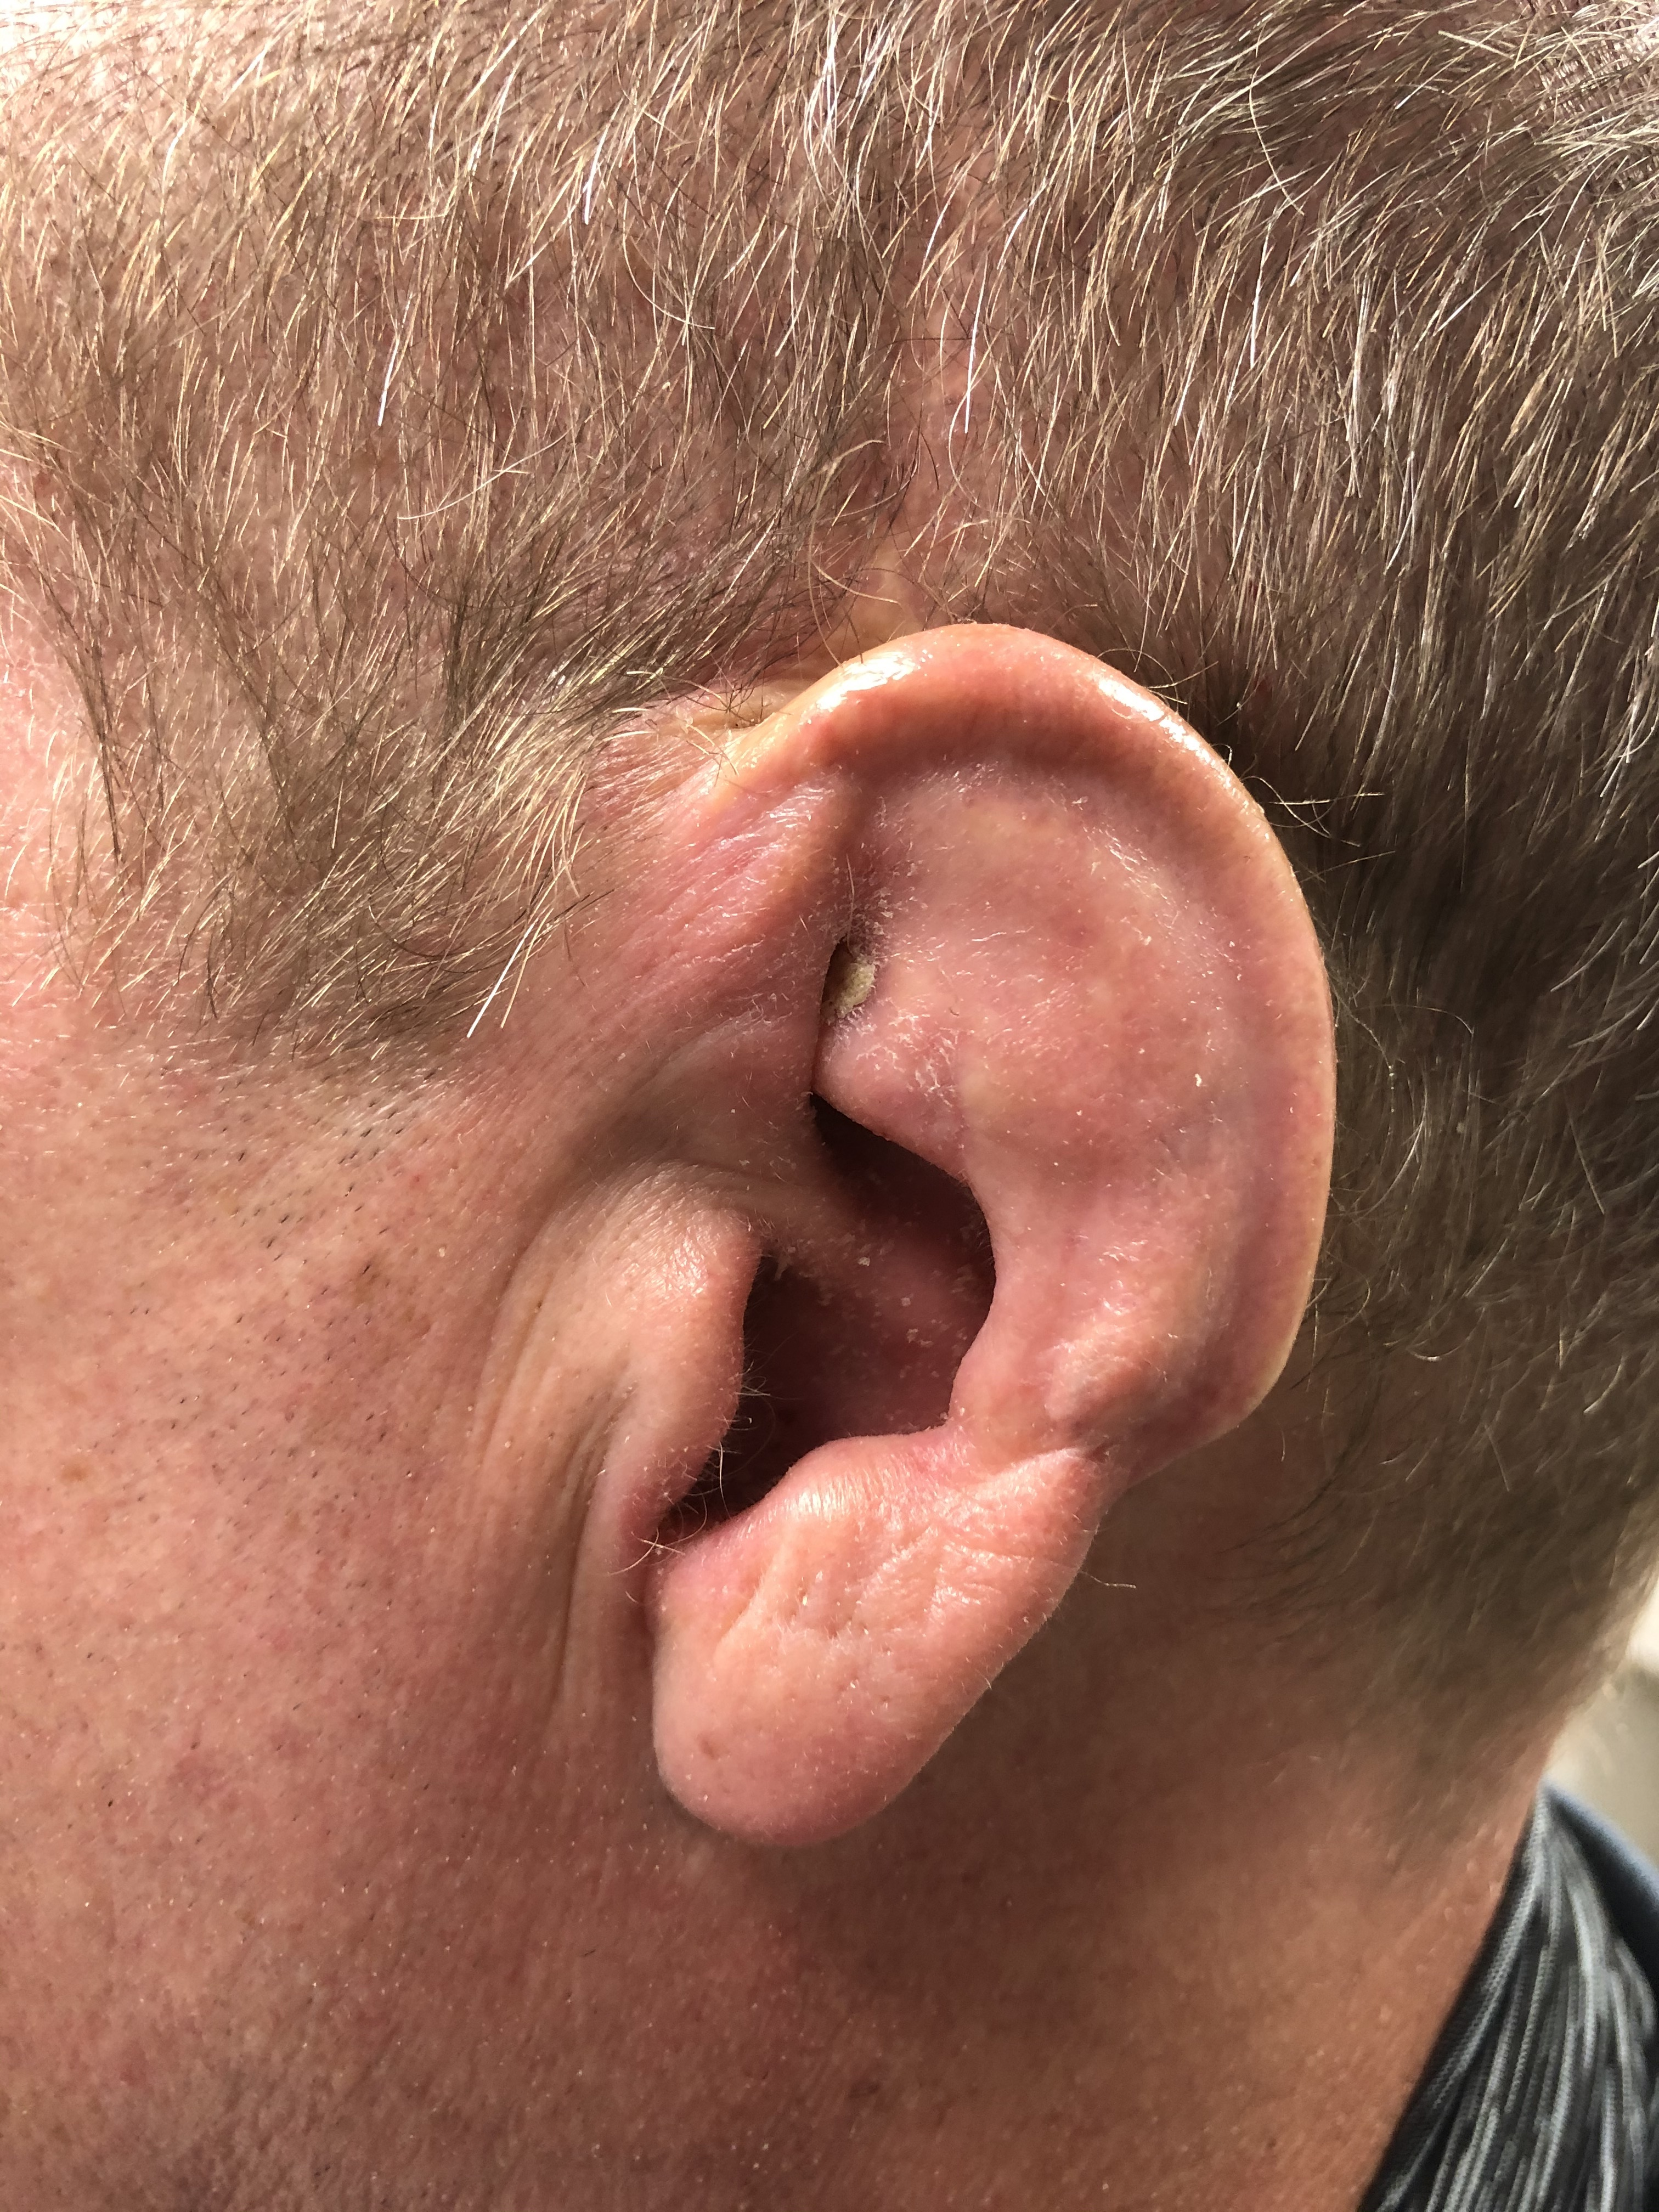 Cauliflower ear - mild